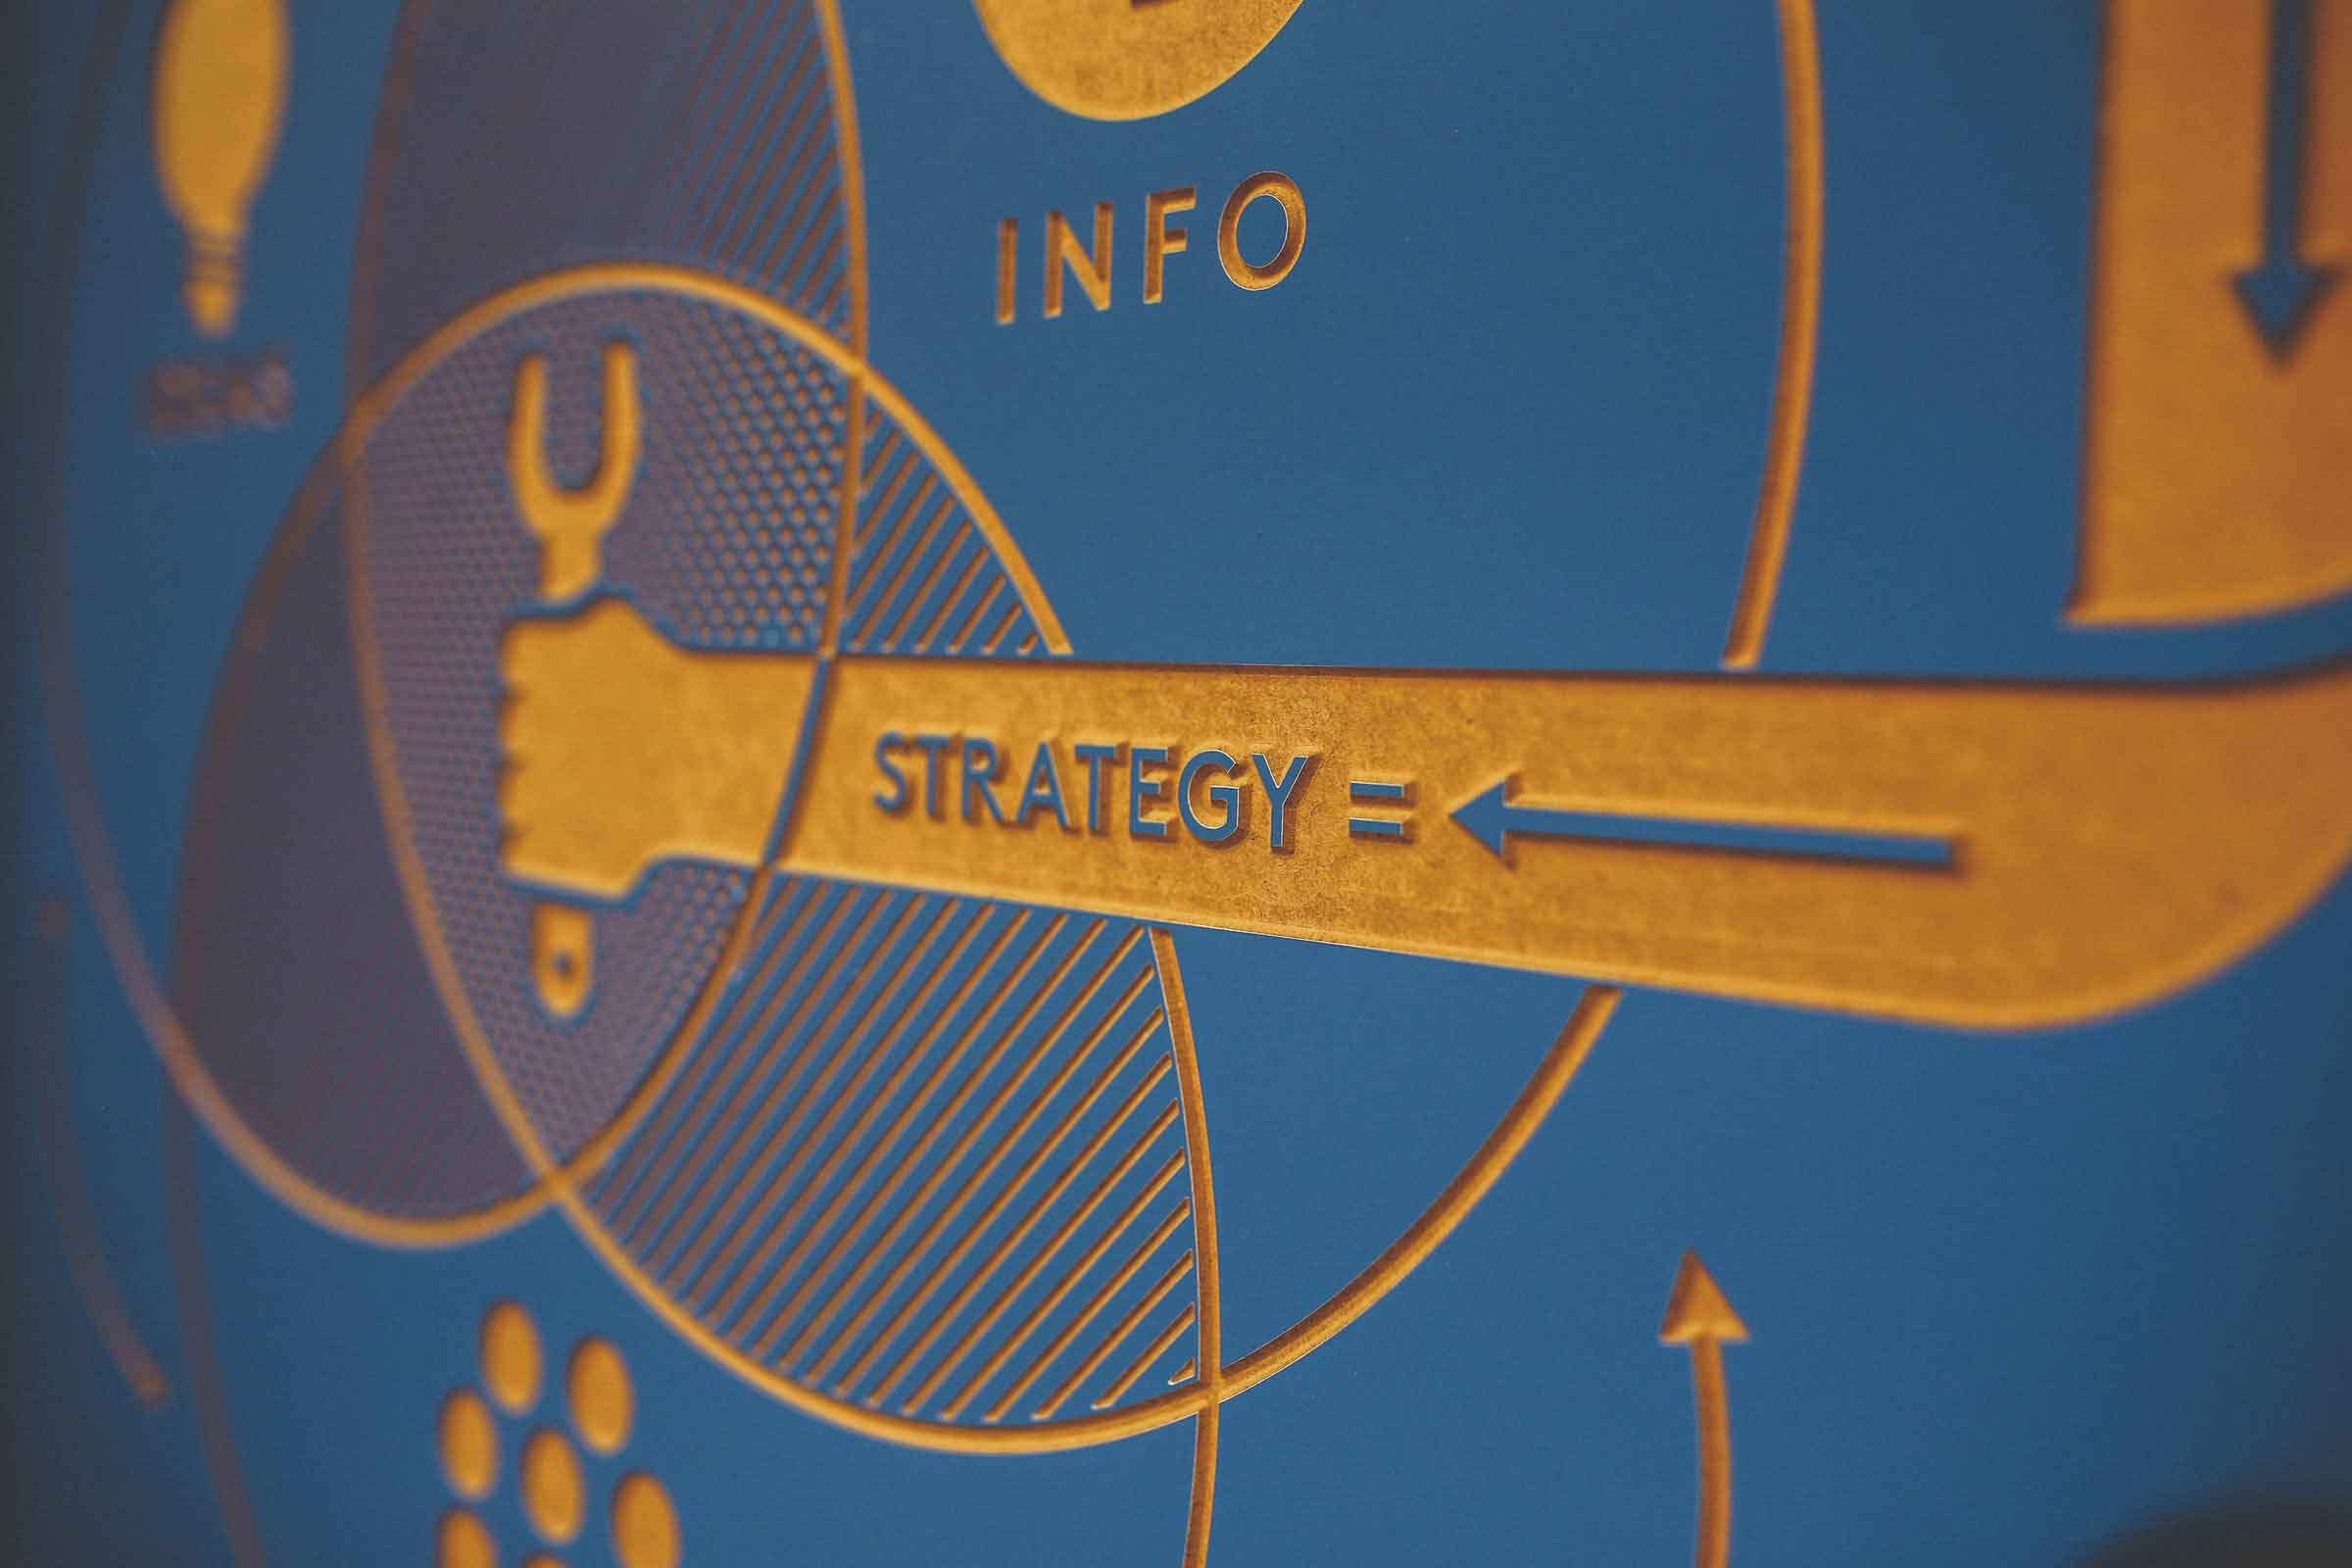 Demand Generation Strategy: How to Attract More Leads In 2021